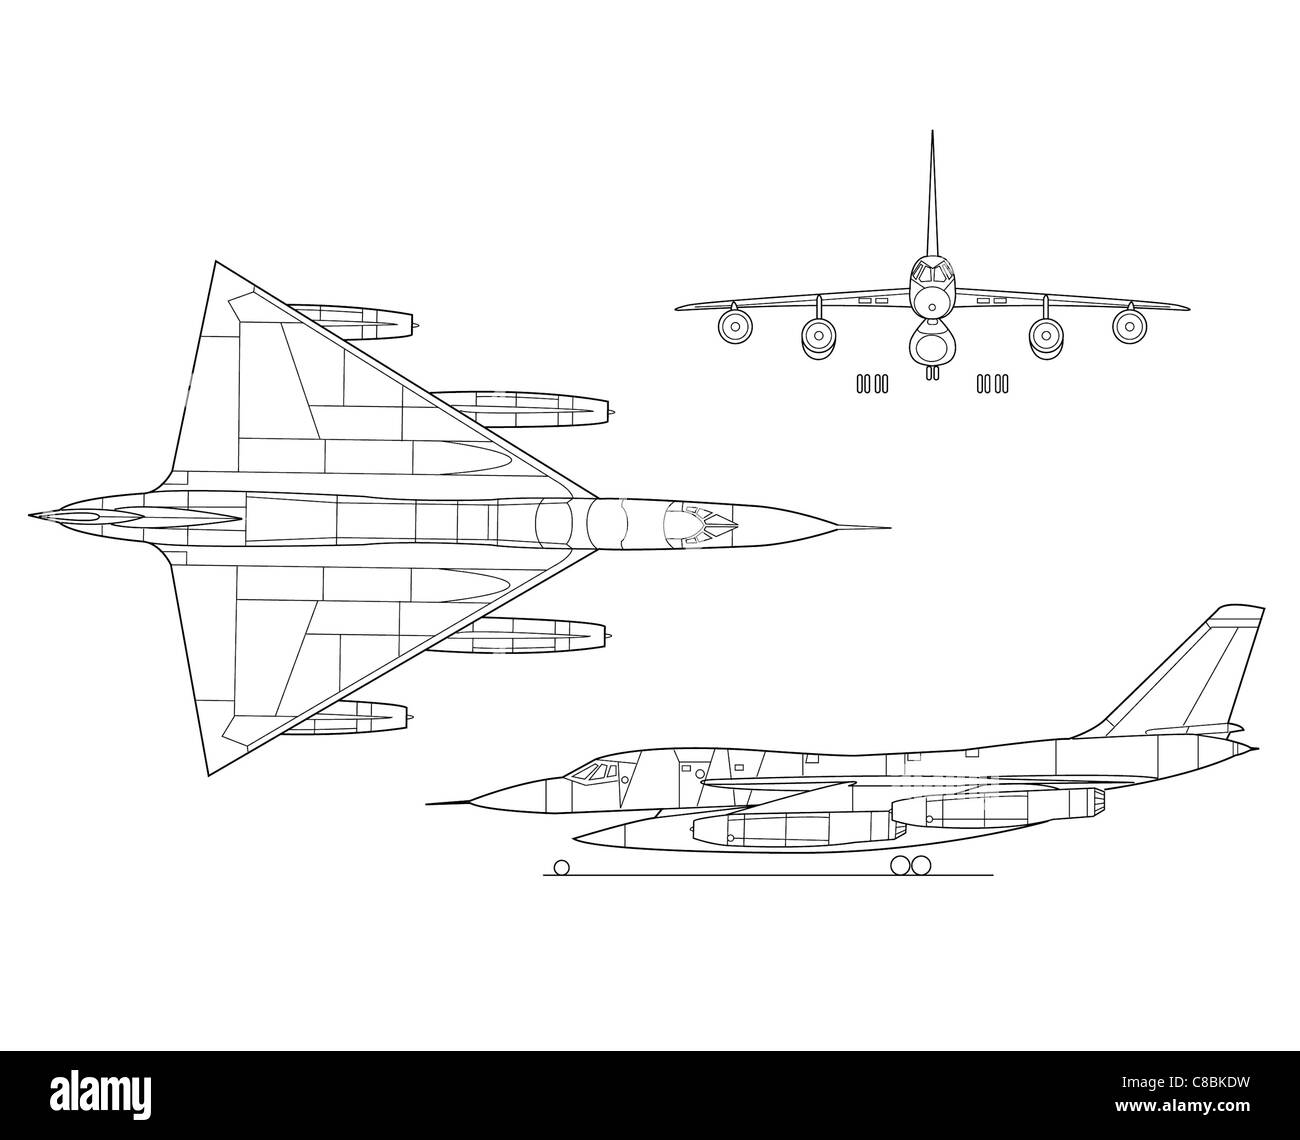 B-58 Hustler 3 view aircraft line art drawing Stock Photo: 39594741